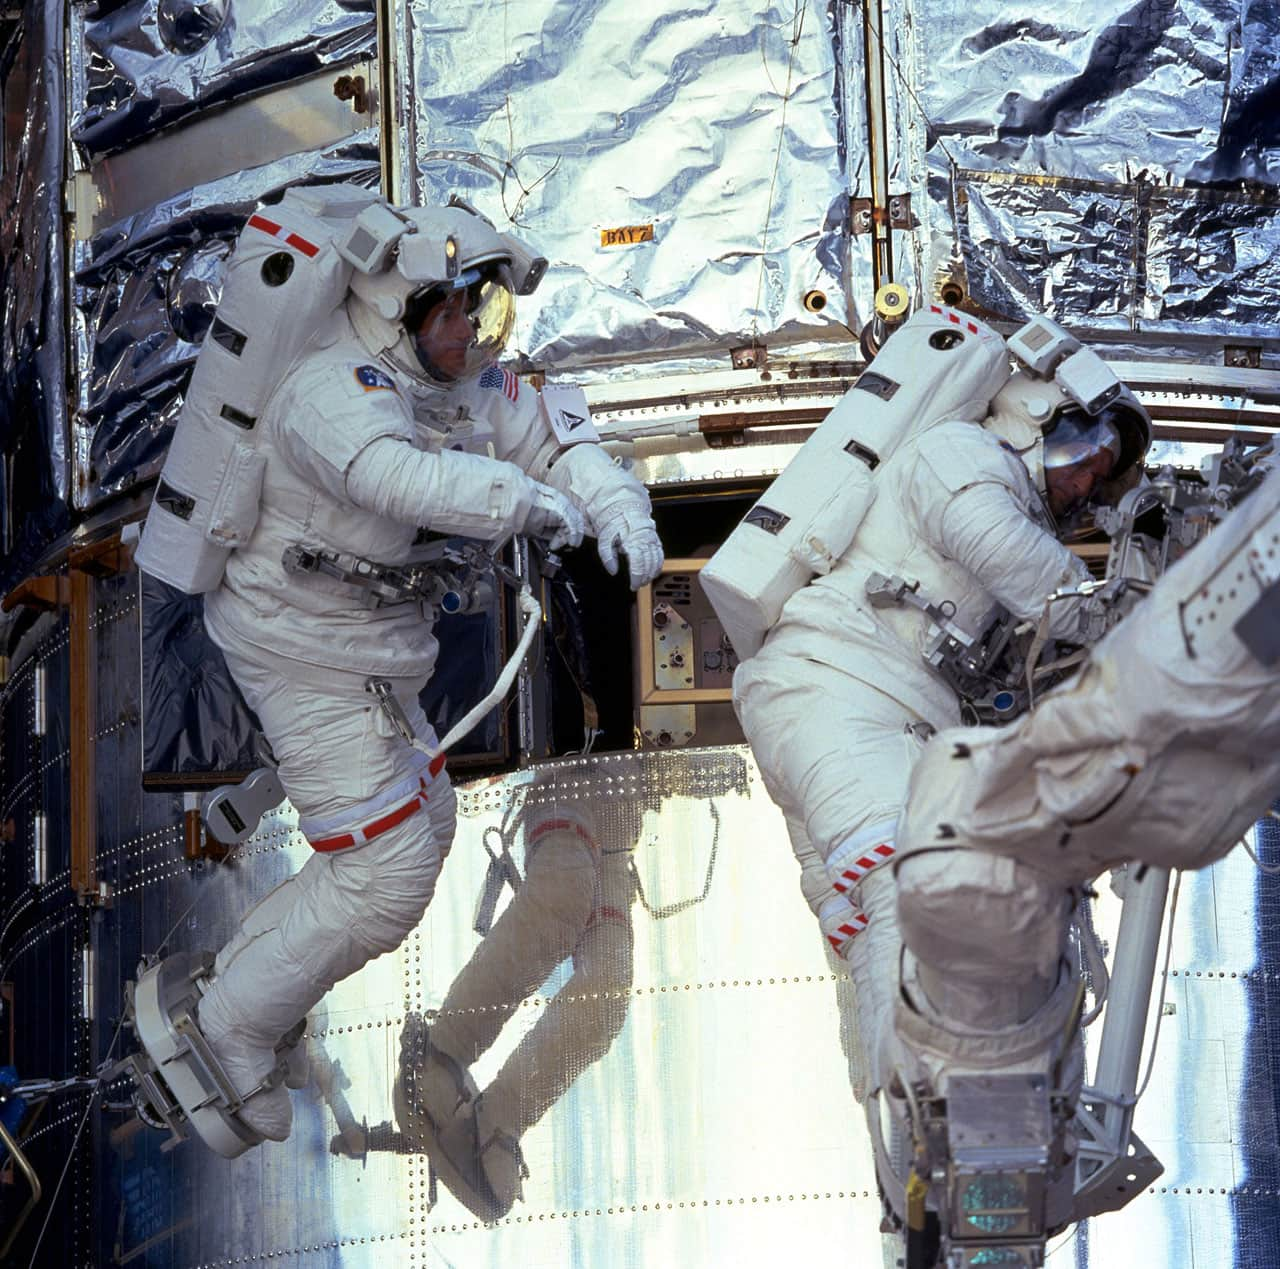 Astronaughts working on Hubble